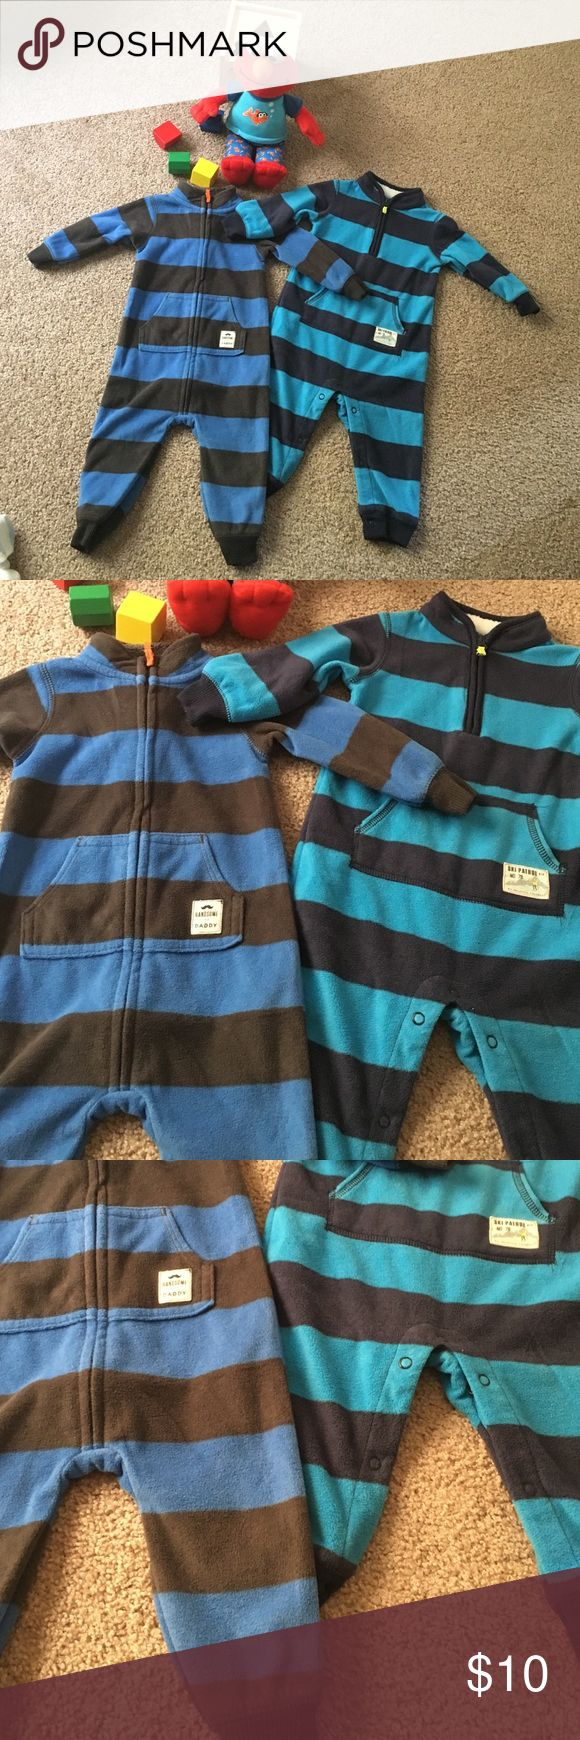 Bundle of 2 Carter's Fleece Bodysuits 2 fleece body suits, Carter's brand, size 9M, very gently used, royal blue/grey is complete zip closure, navy & sky blue is zip neck with button closure at legs. Both are footless, perfect to wear with cute shoes or boots on a cold day! Excellent condition! Carter's One Pieces Bodysuits